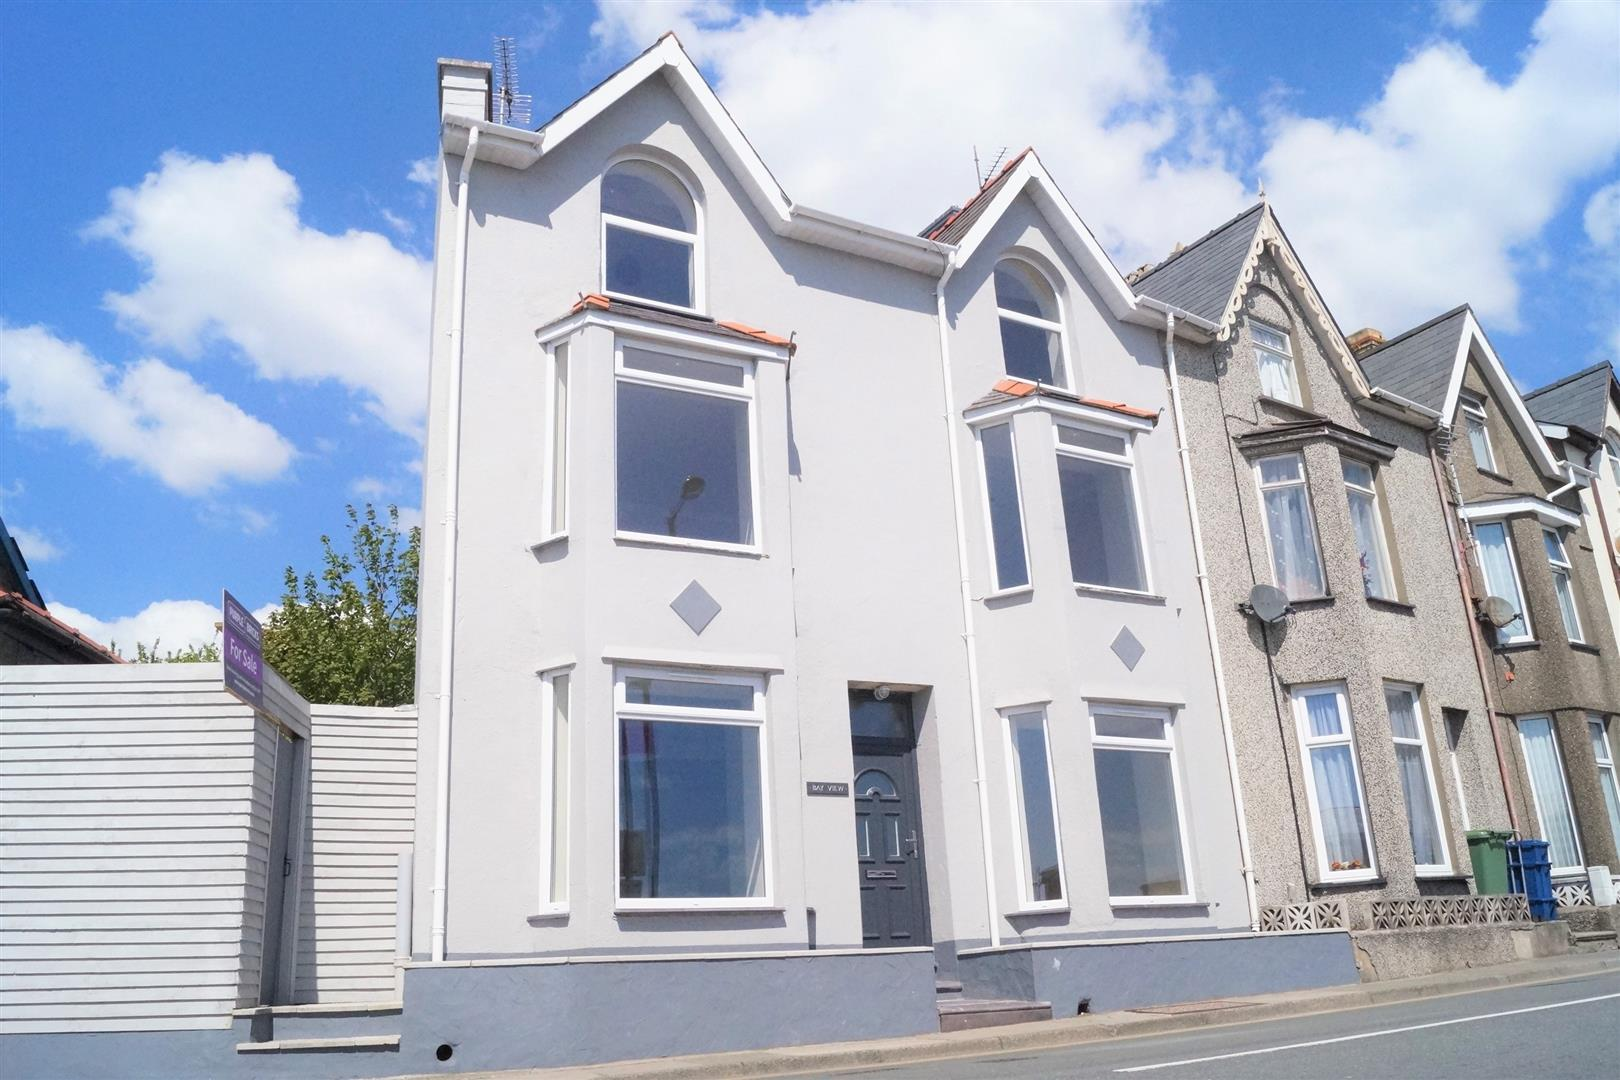 Bay View Terrace, Pwllheli - £170,000/Offers over